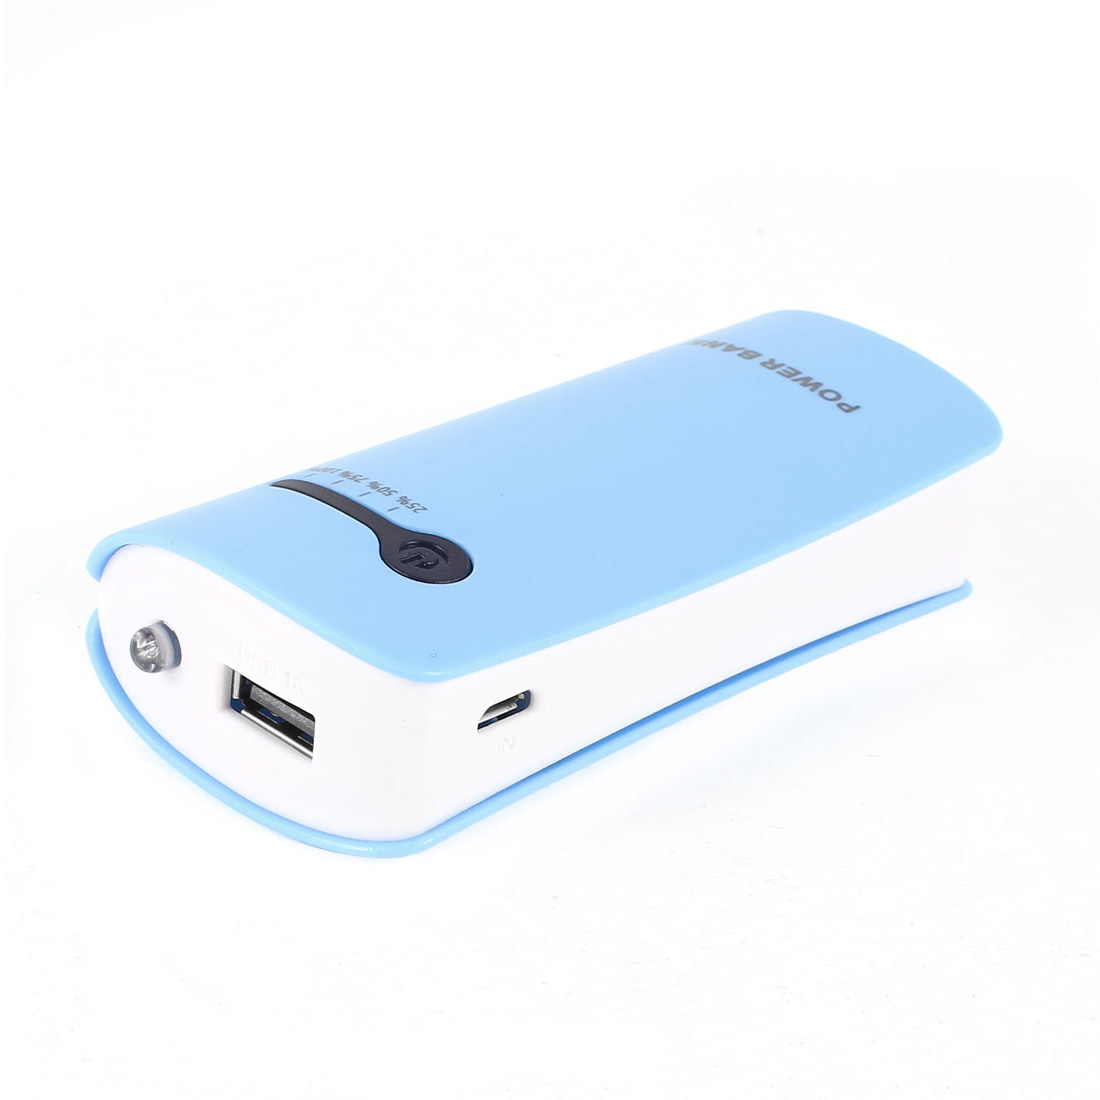 LED Flashlight 5600mAh USB External Battery Charger Phone Power Bank Baby Blue